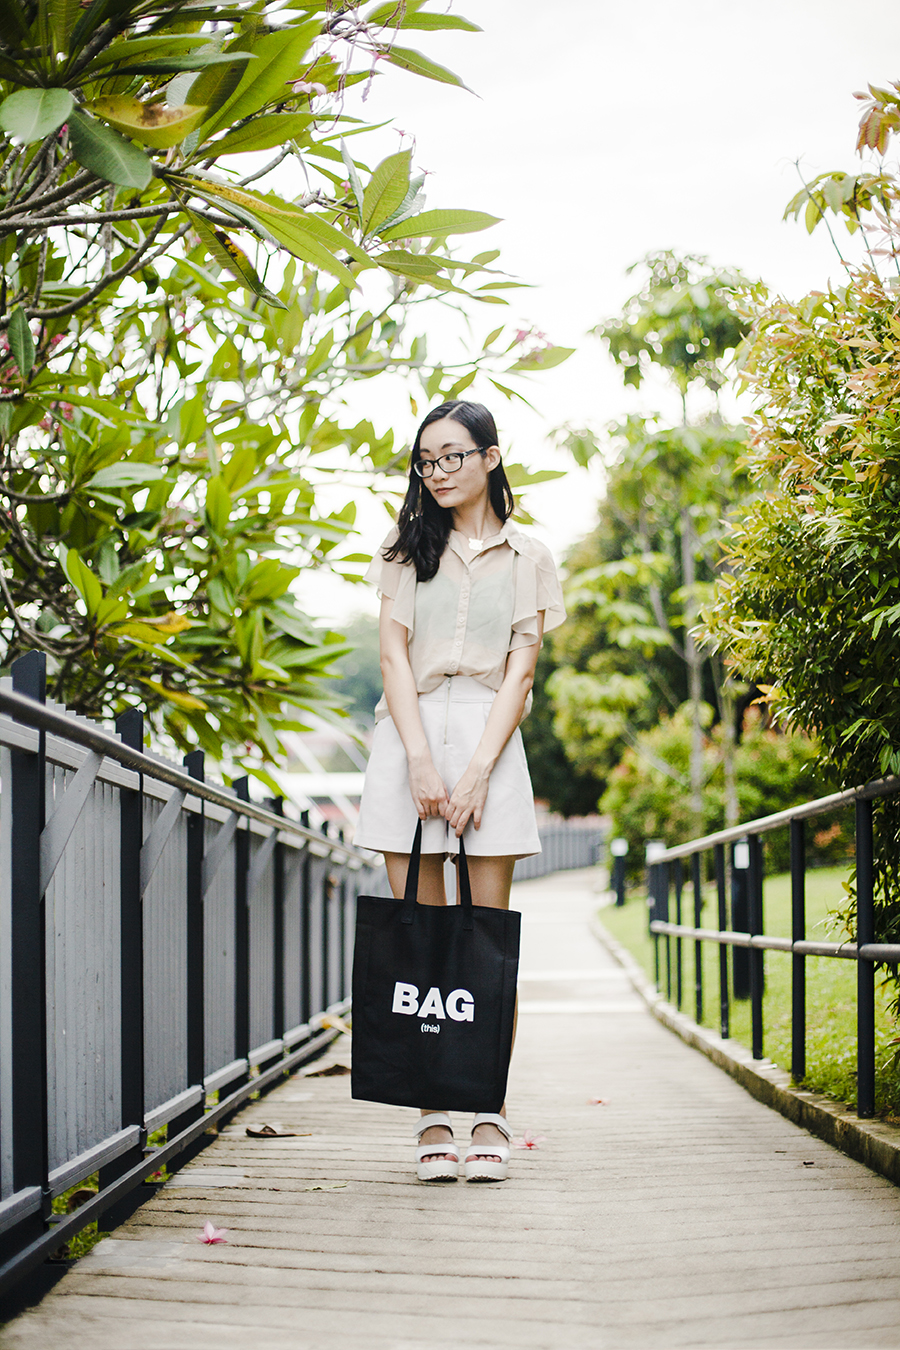 Forever 21 green bra & tan chiffon blouse, Lowry's Farm shorts, Bag (this) black tote, Gap black frame glasses, Taobao white platform sandals.